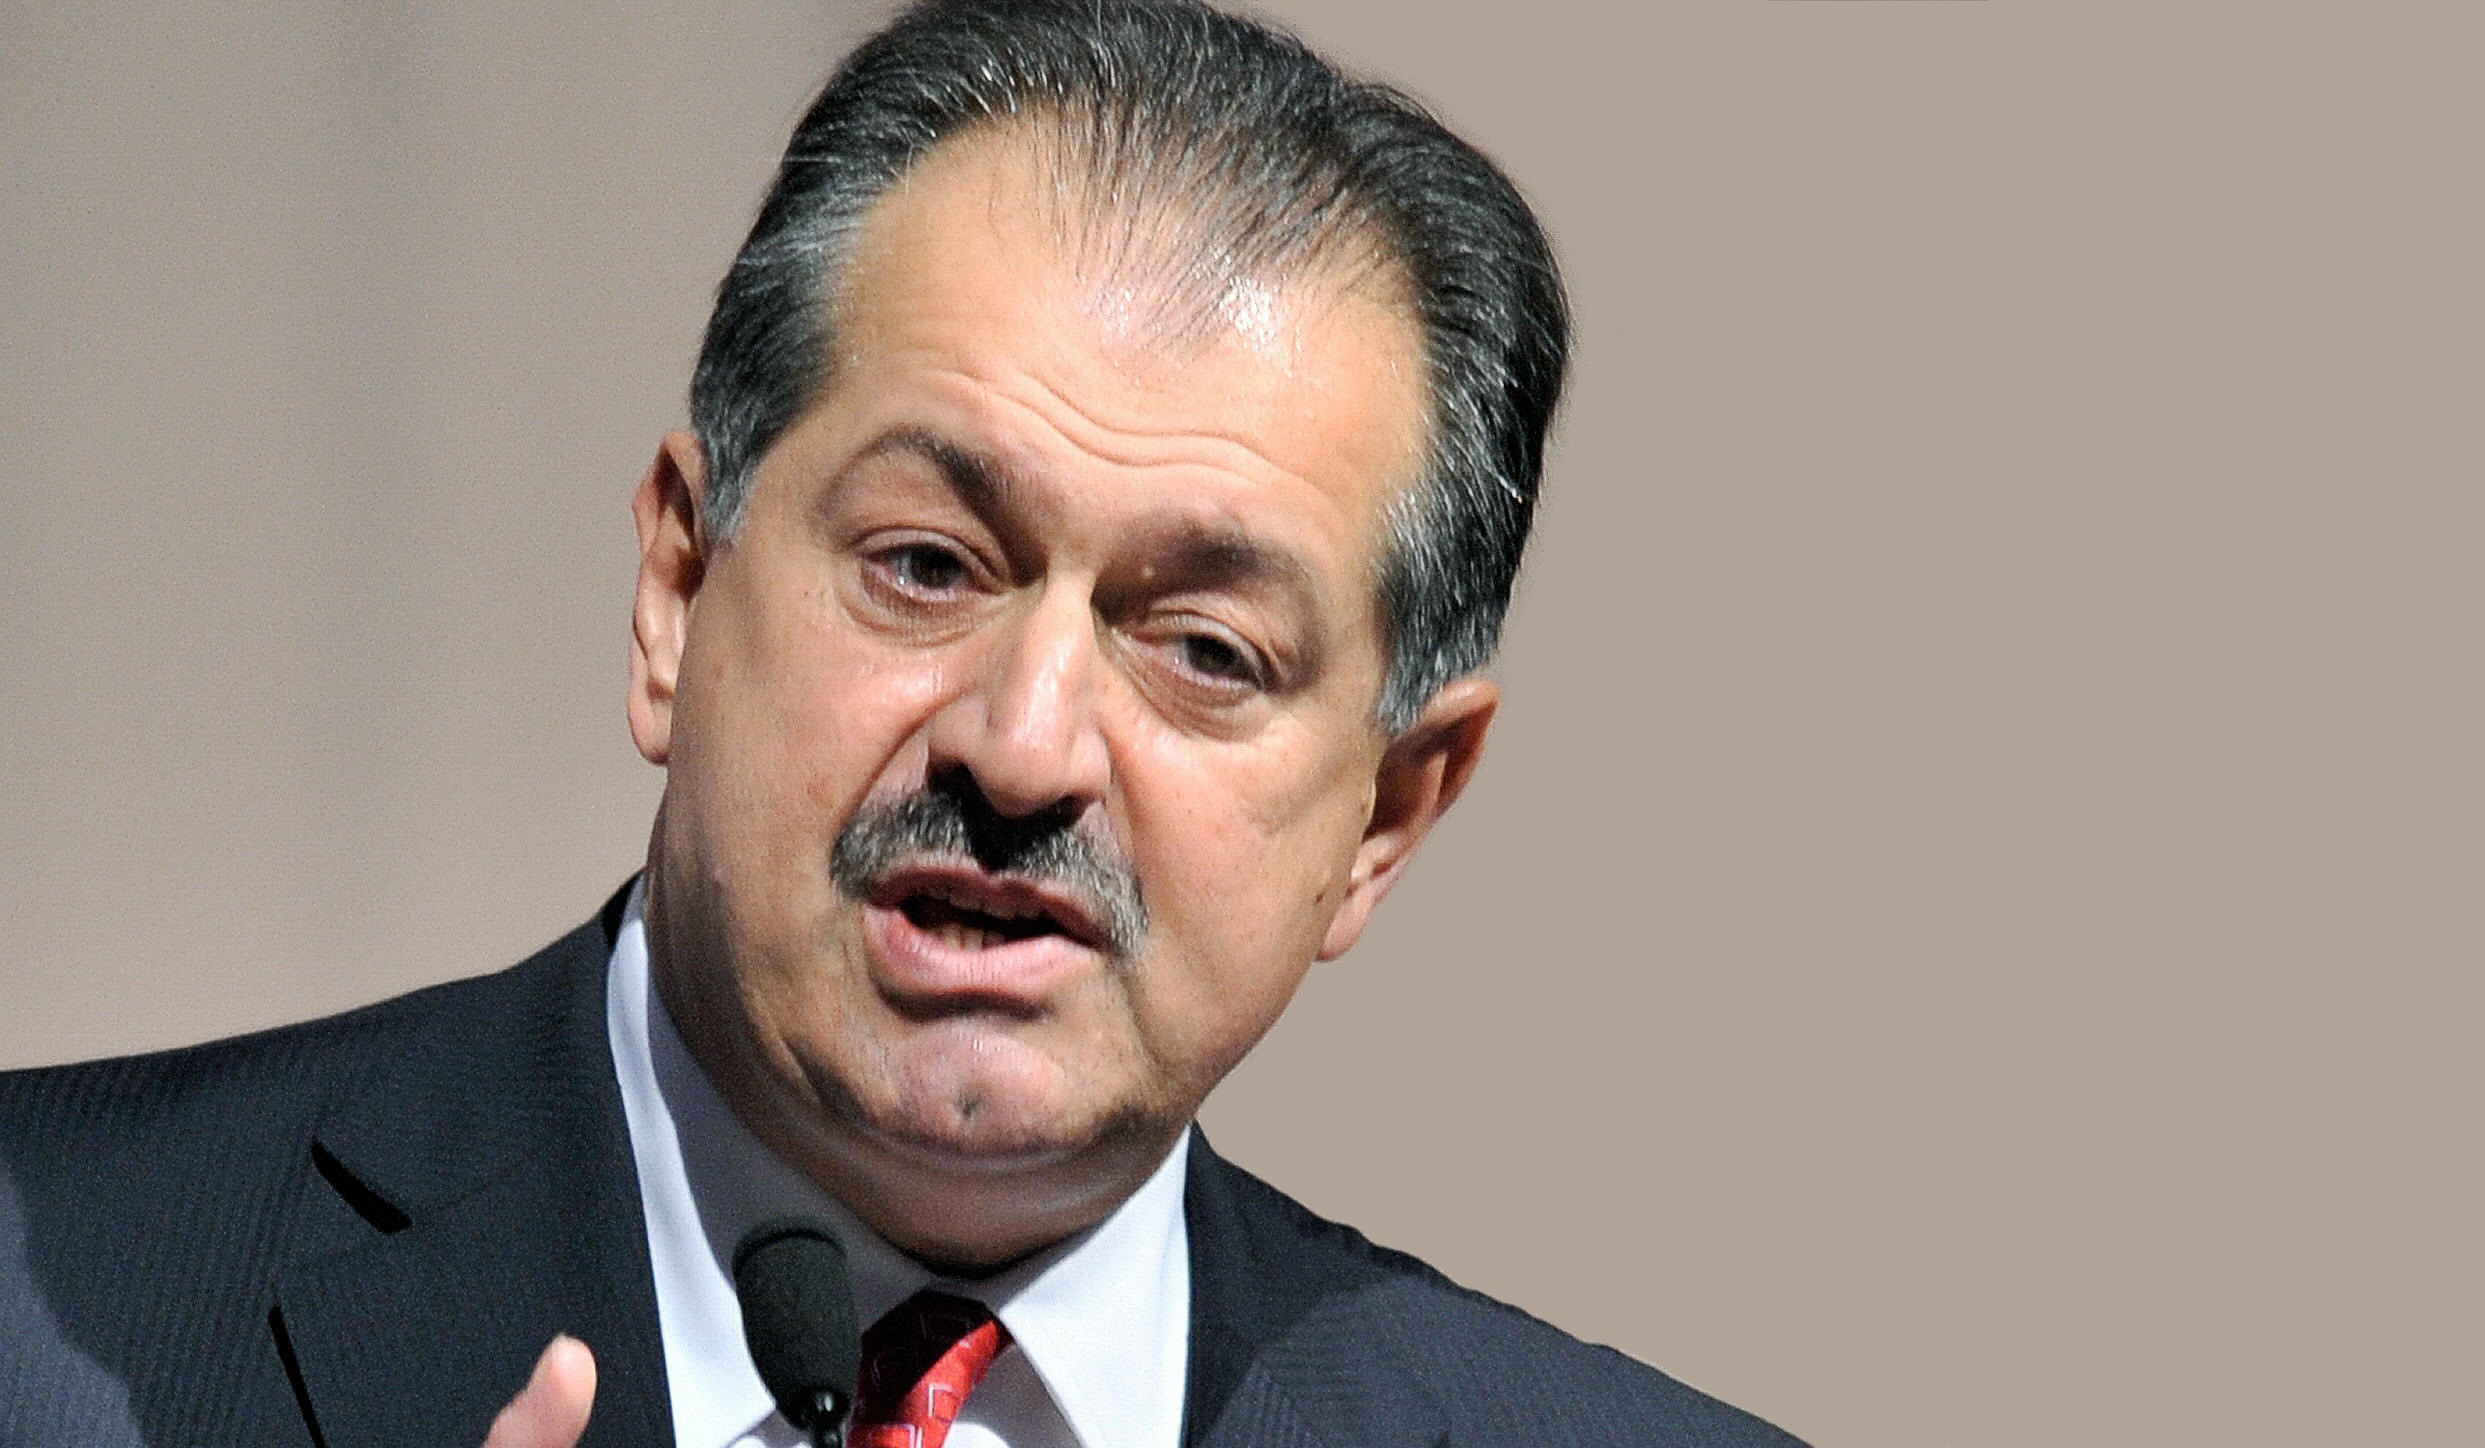 Andrew Liveris – Former Chairman & CEO | About | Dow Corporate